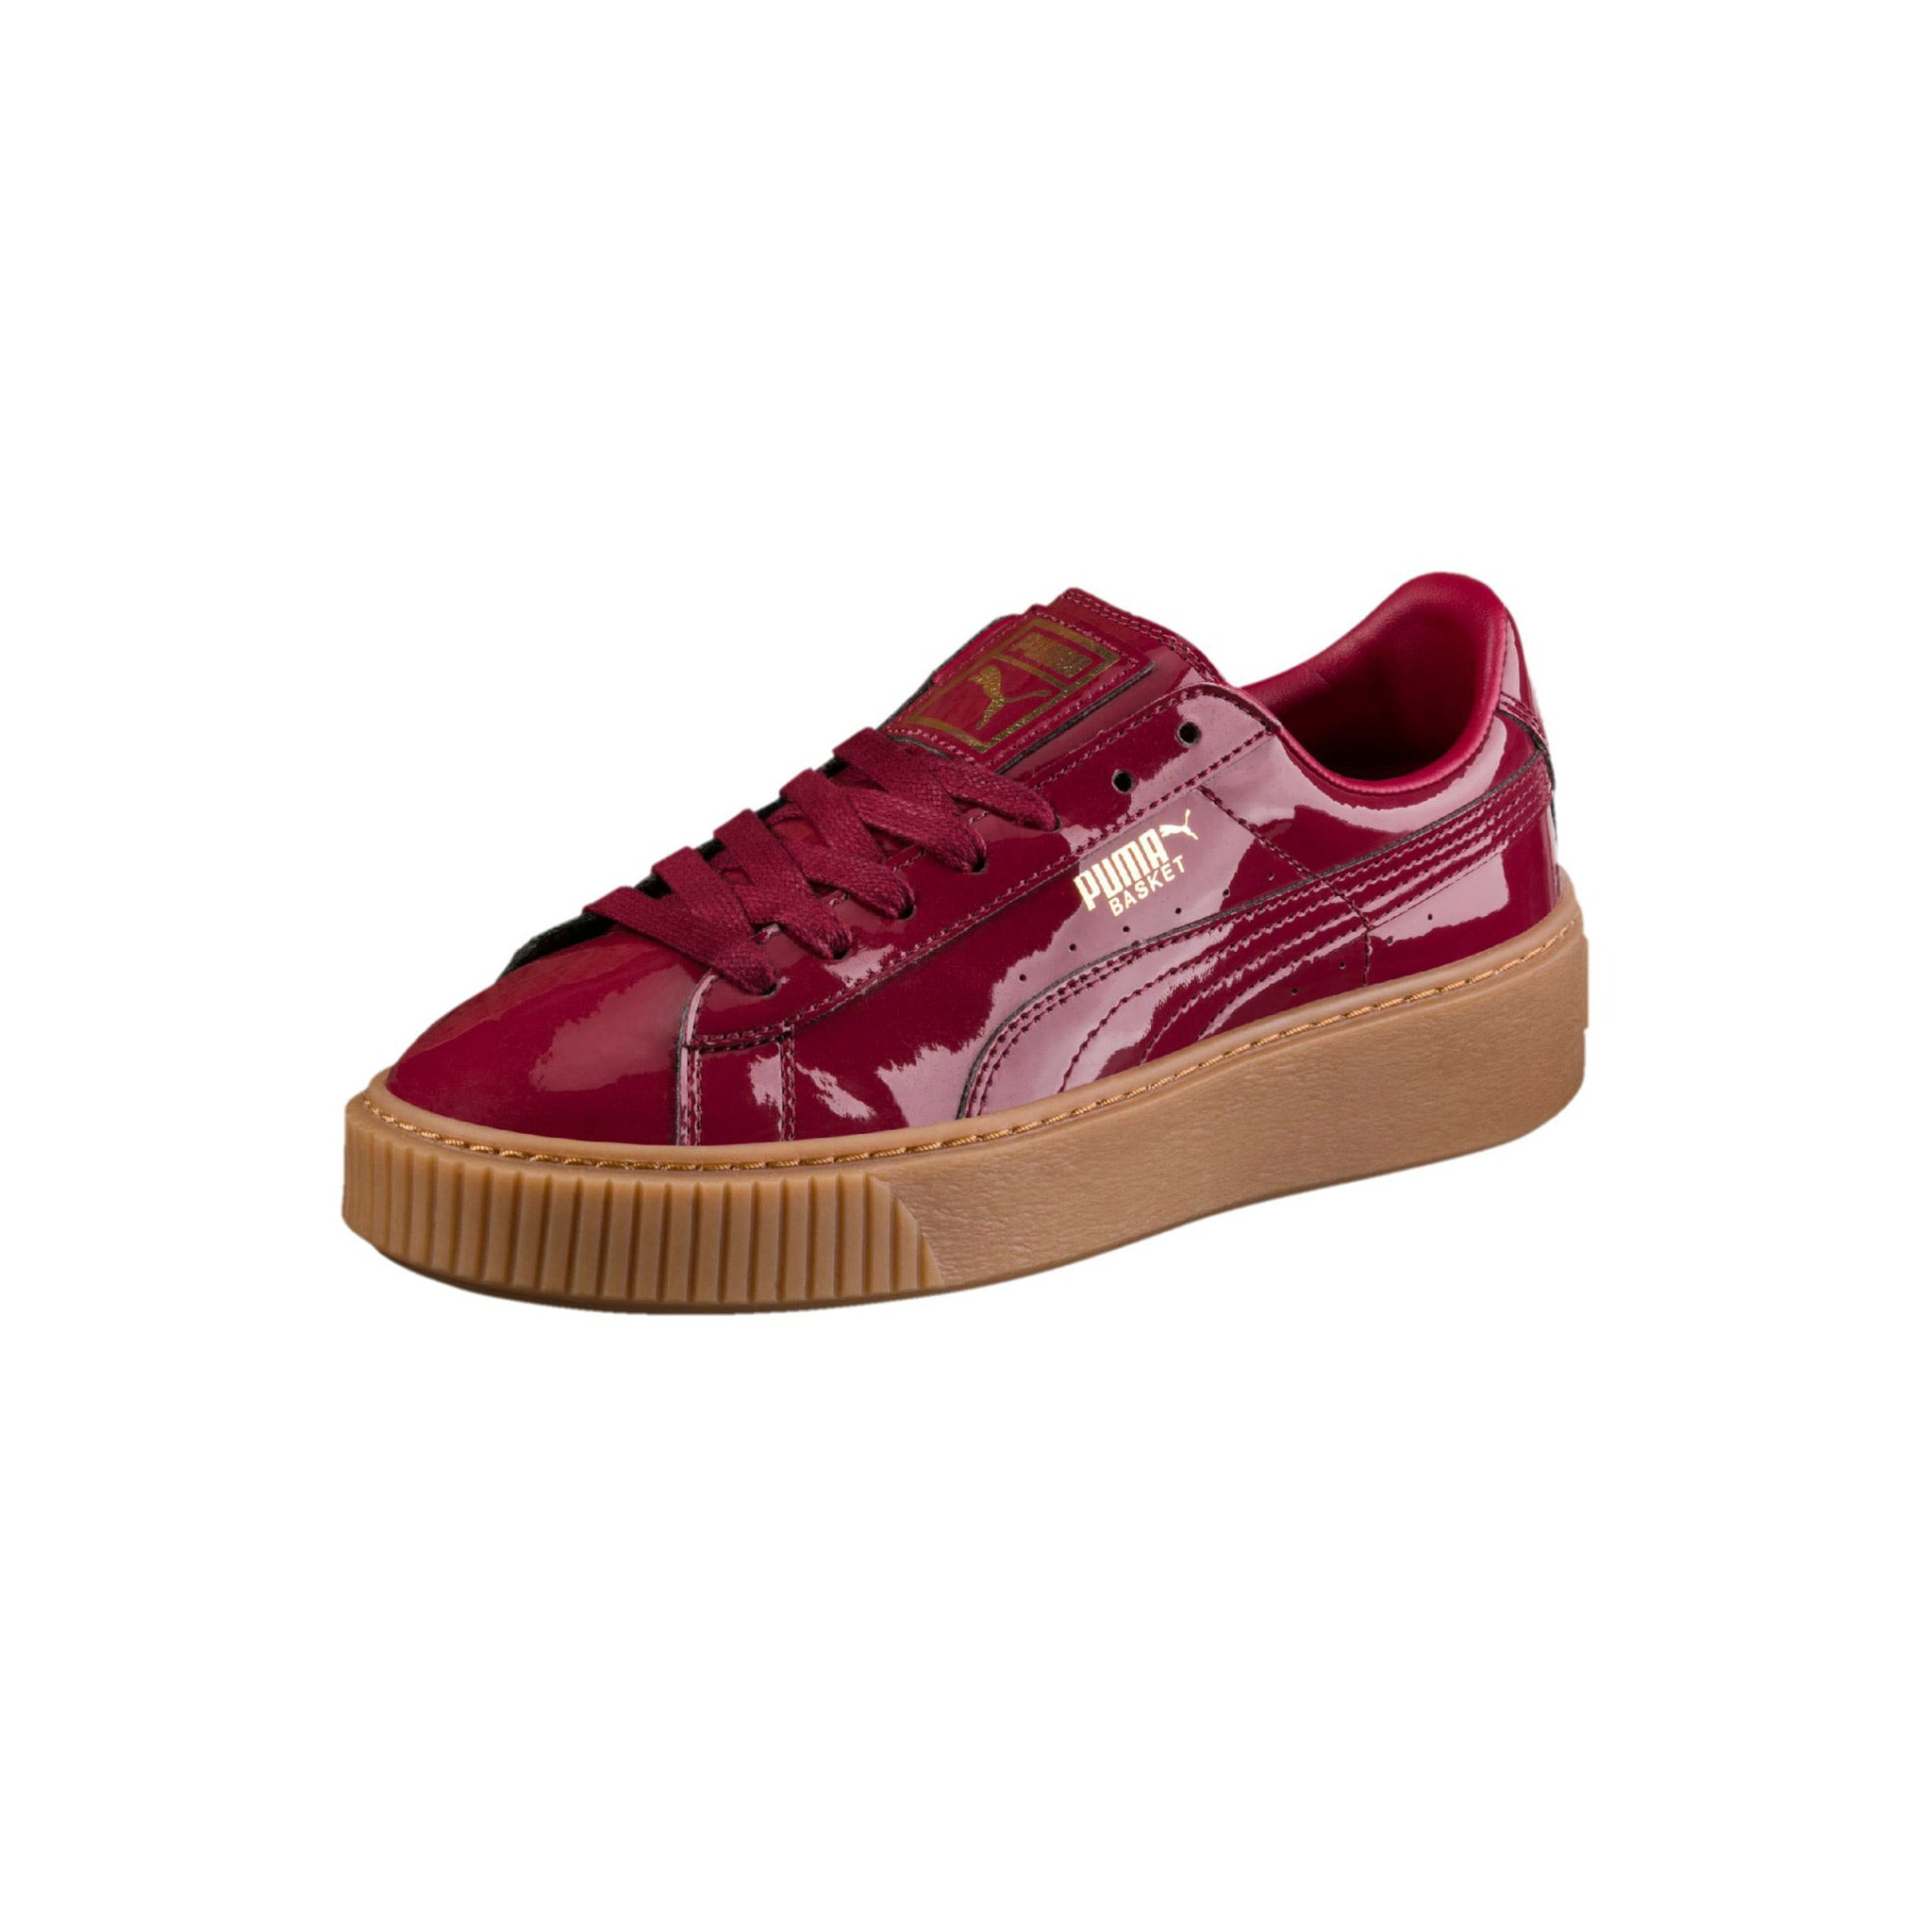 puma basket red